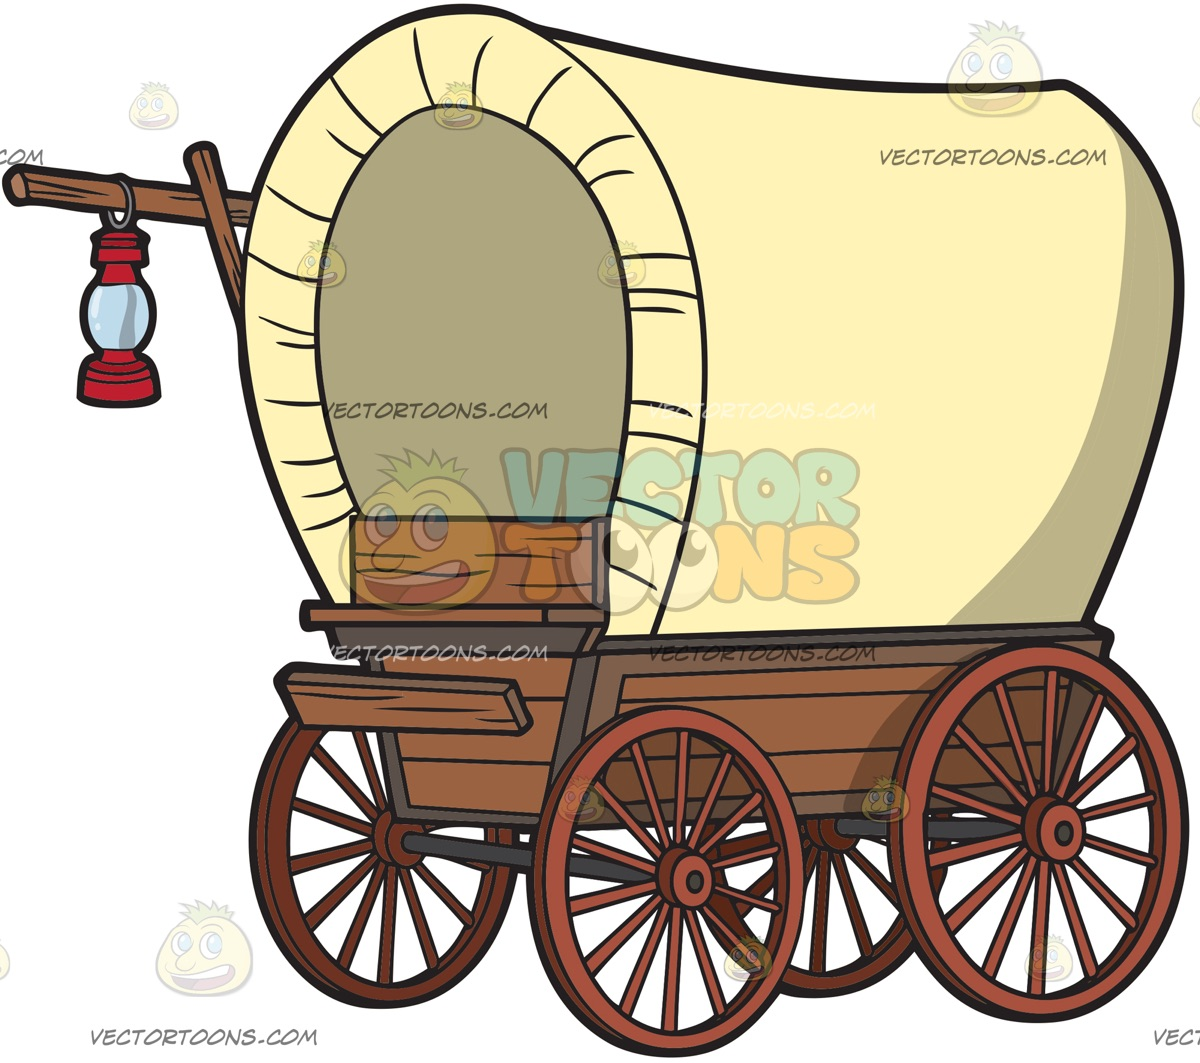 1200x1063 A Vintage Covered Wagon With Lamp Clipart By Vector Toons